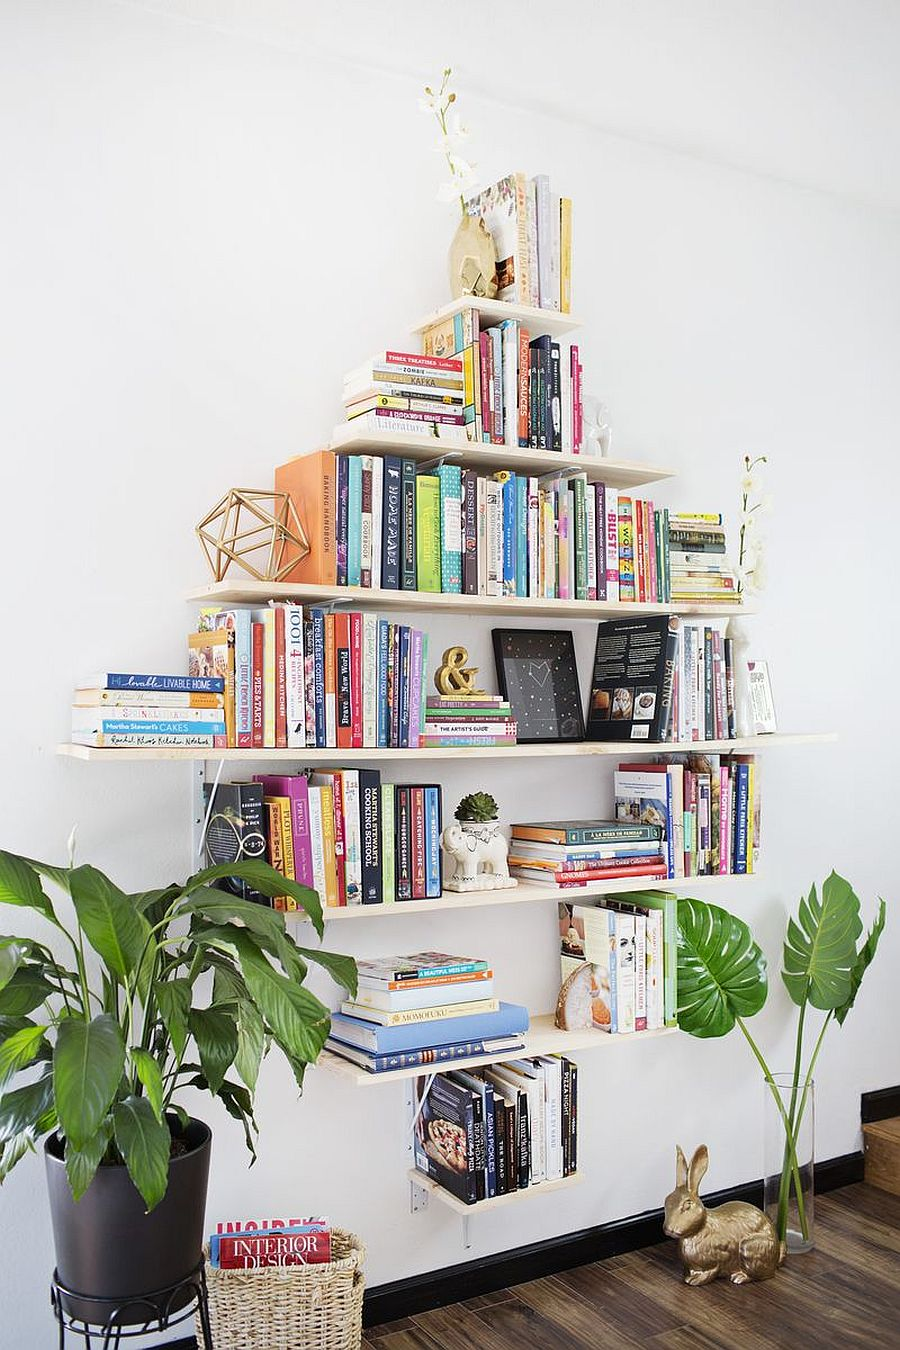 Create your own wall of books with the Diamond Shaped Shelving